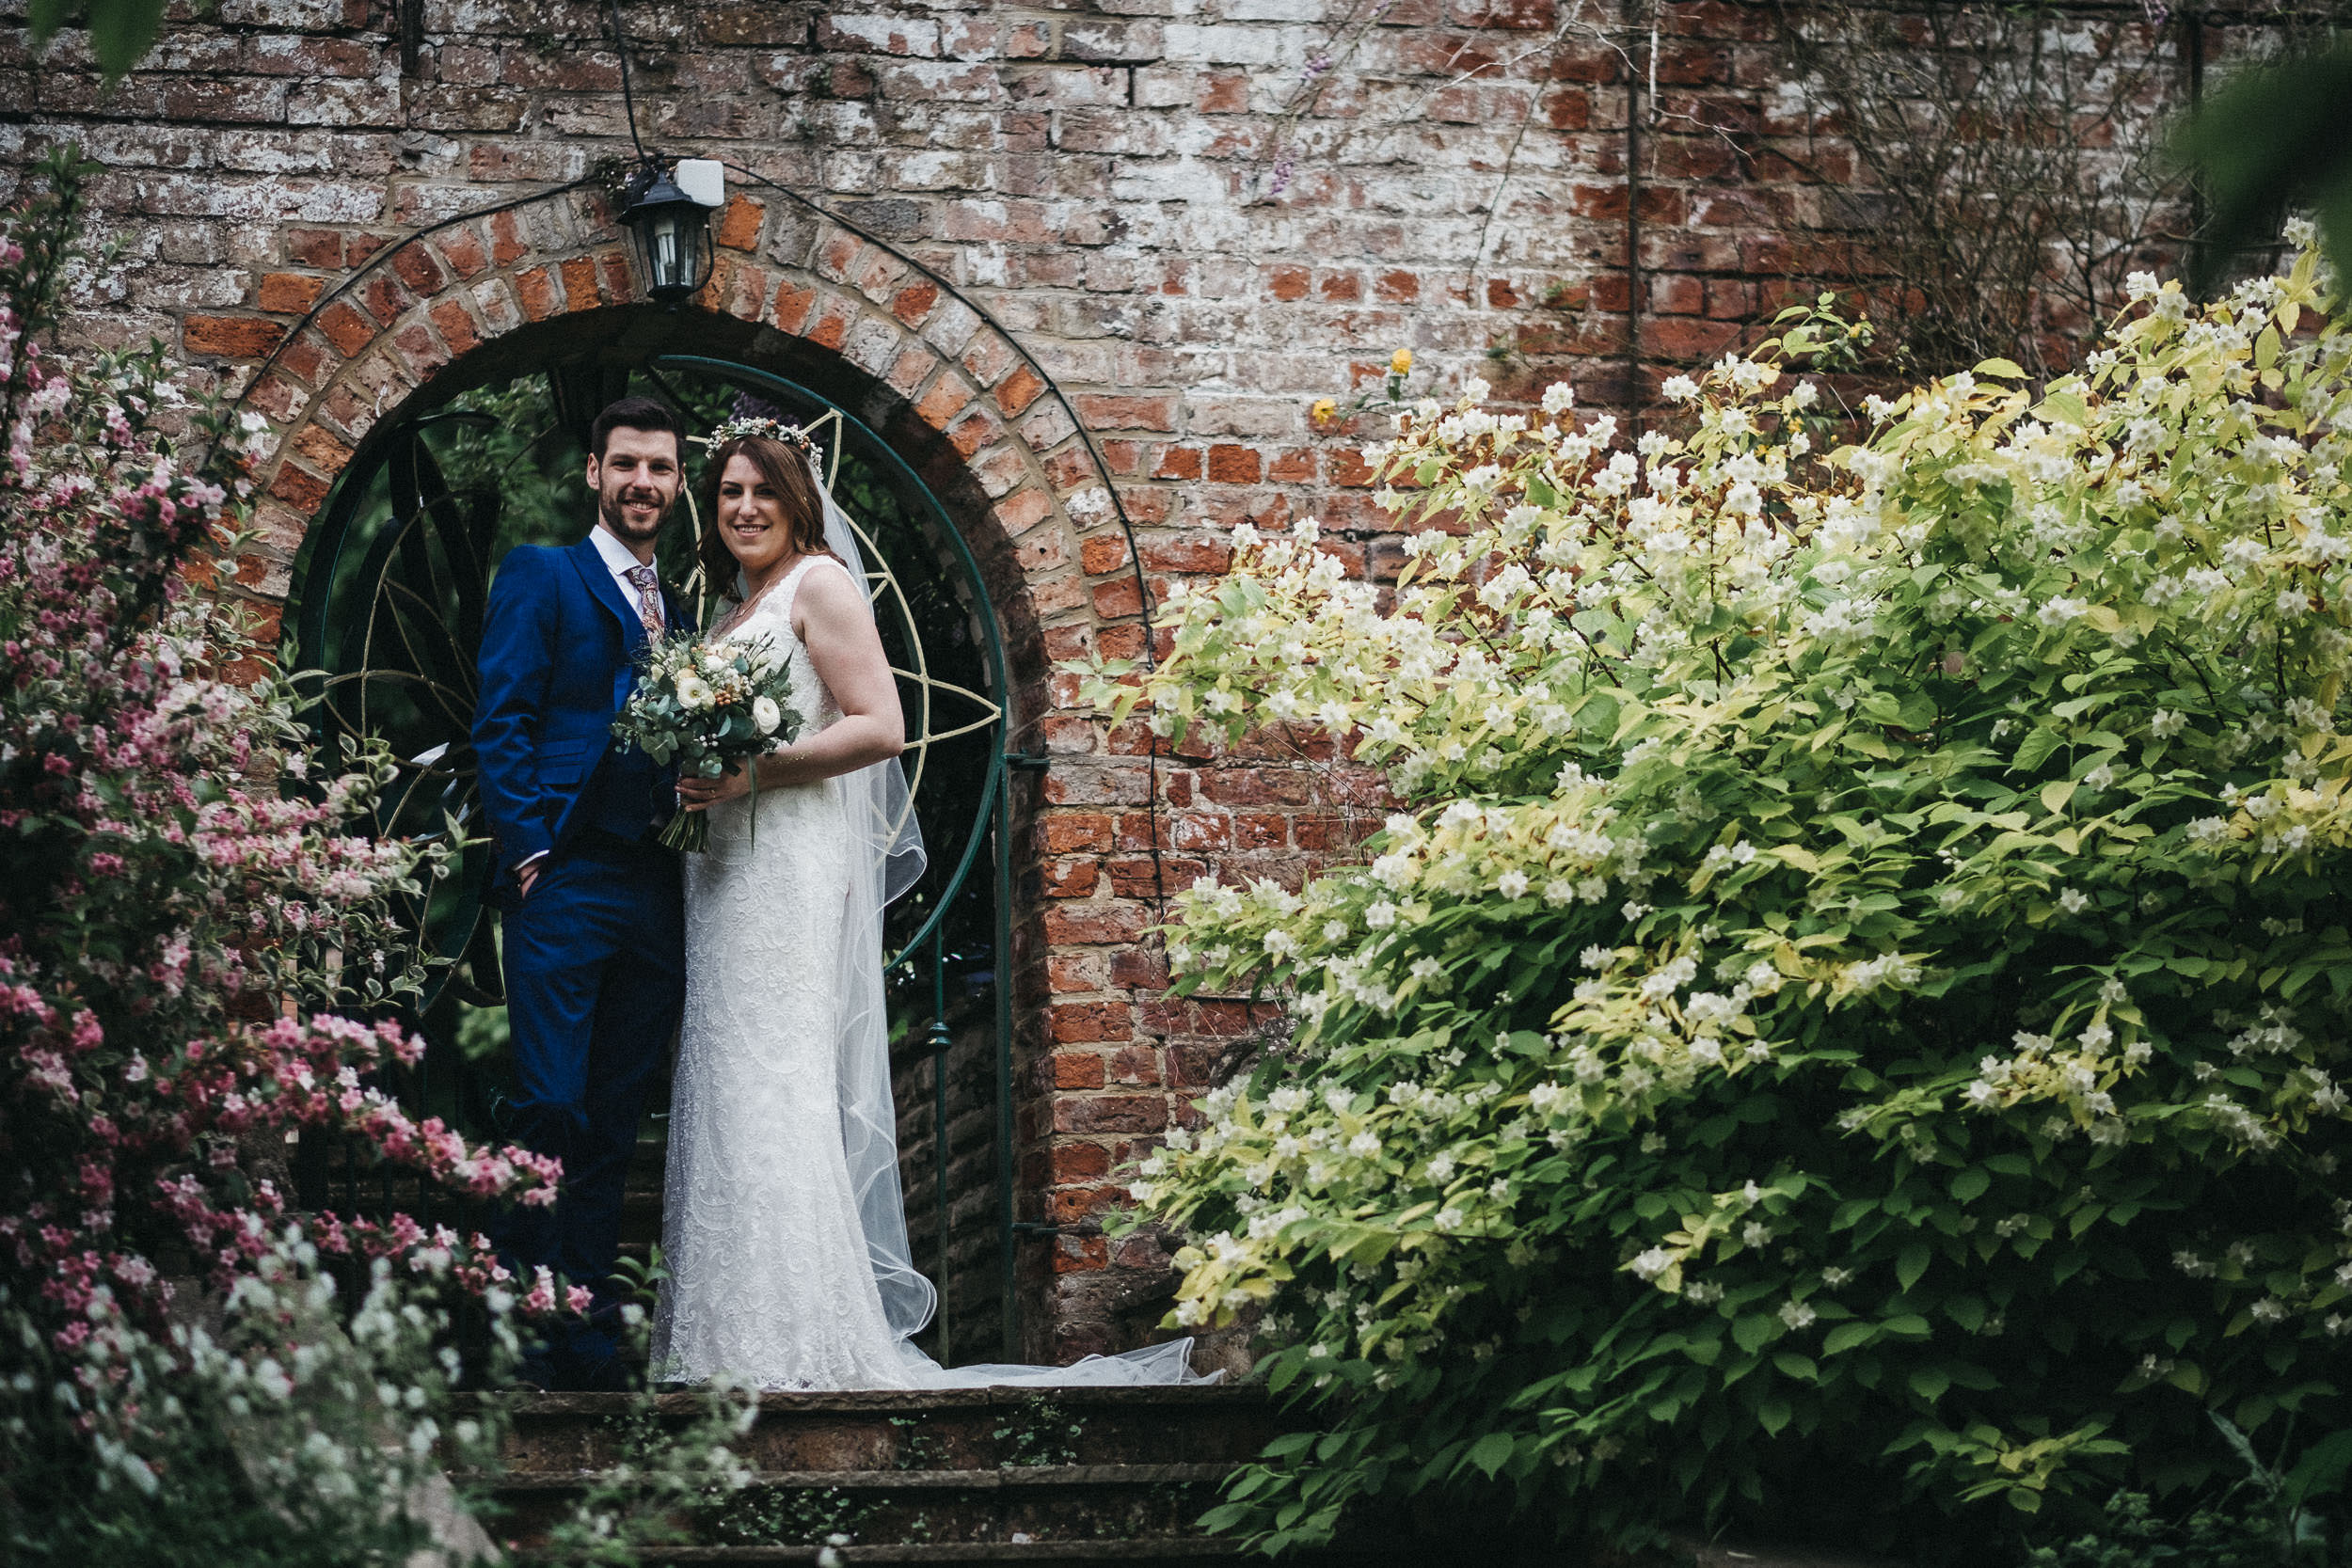 Bride and groom pose on steps surrounded by flowers